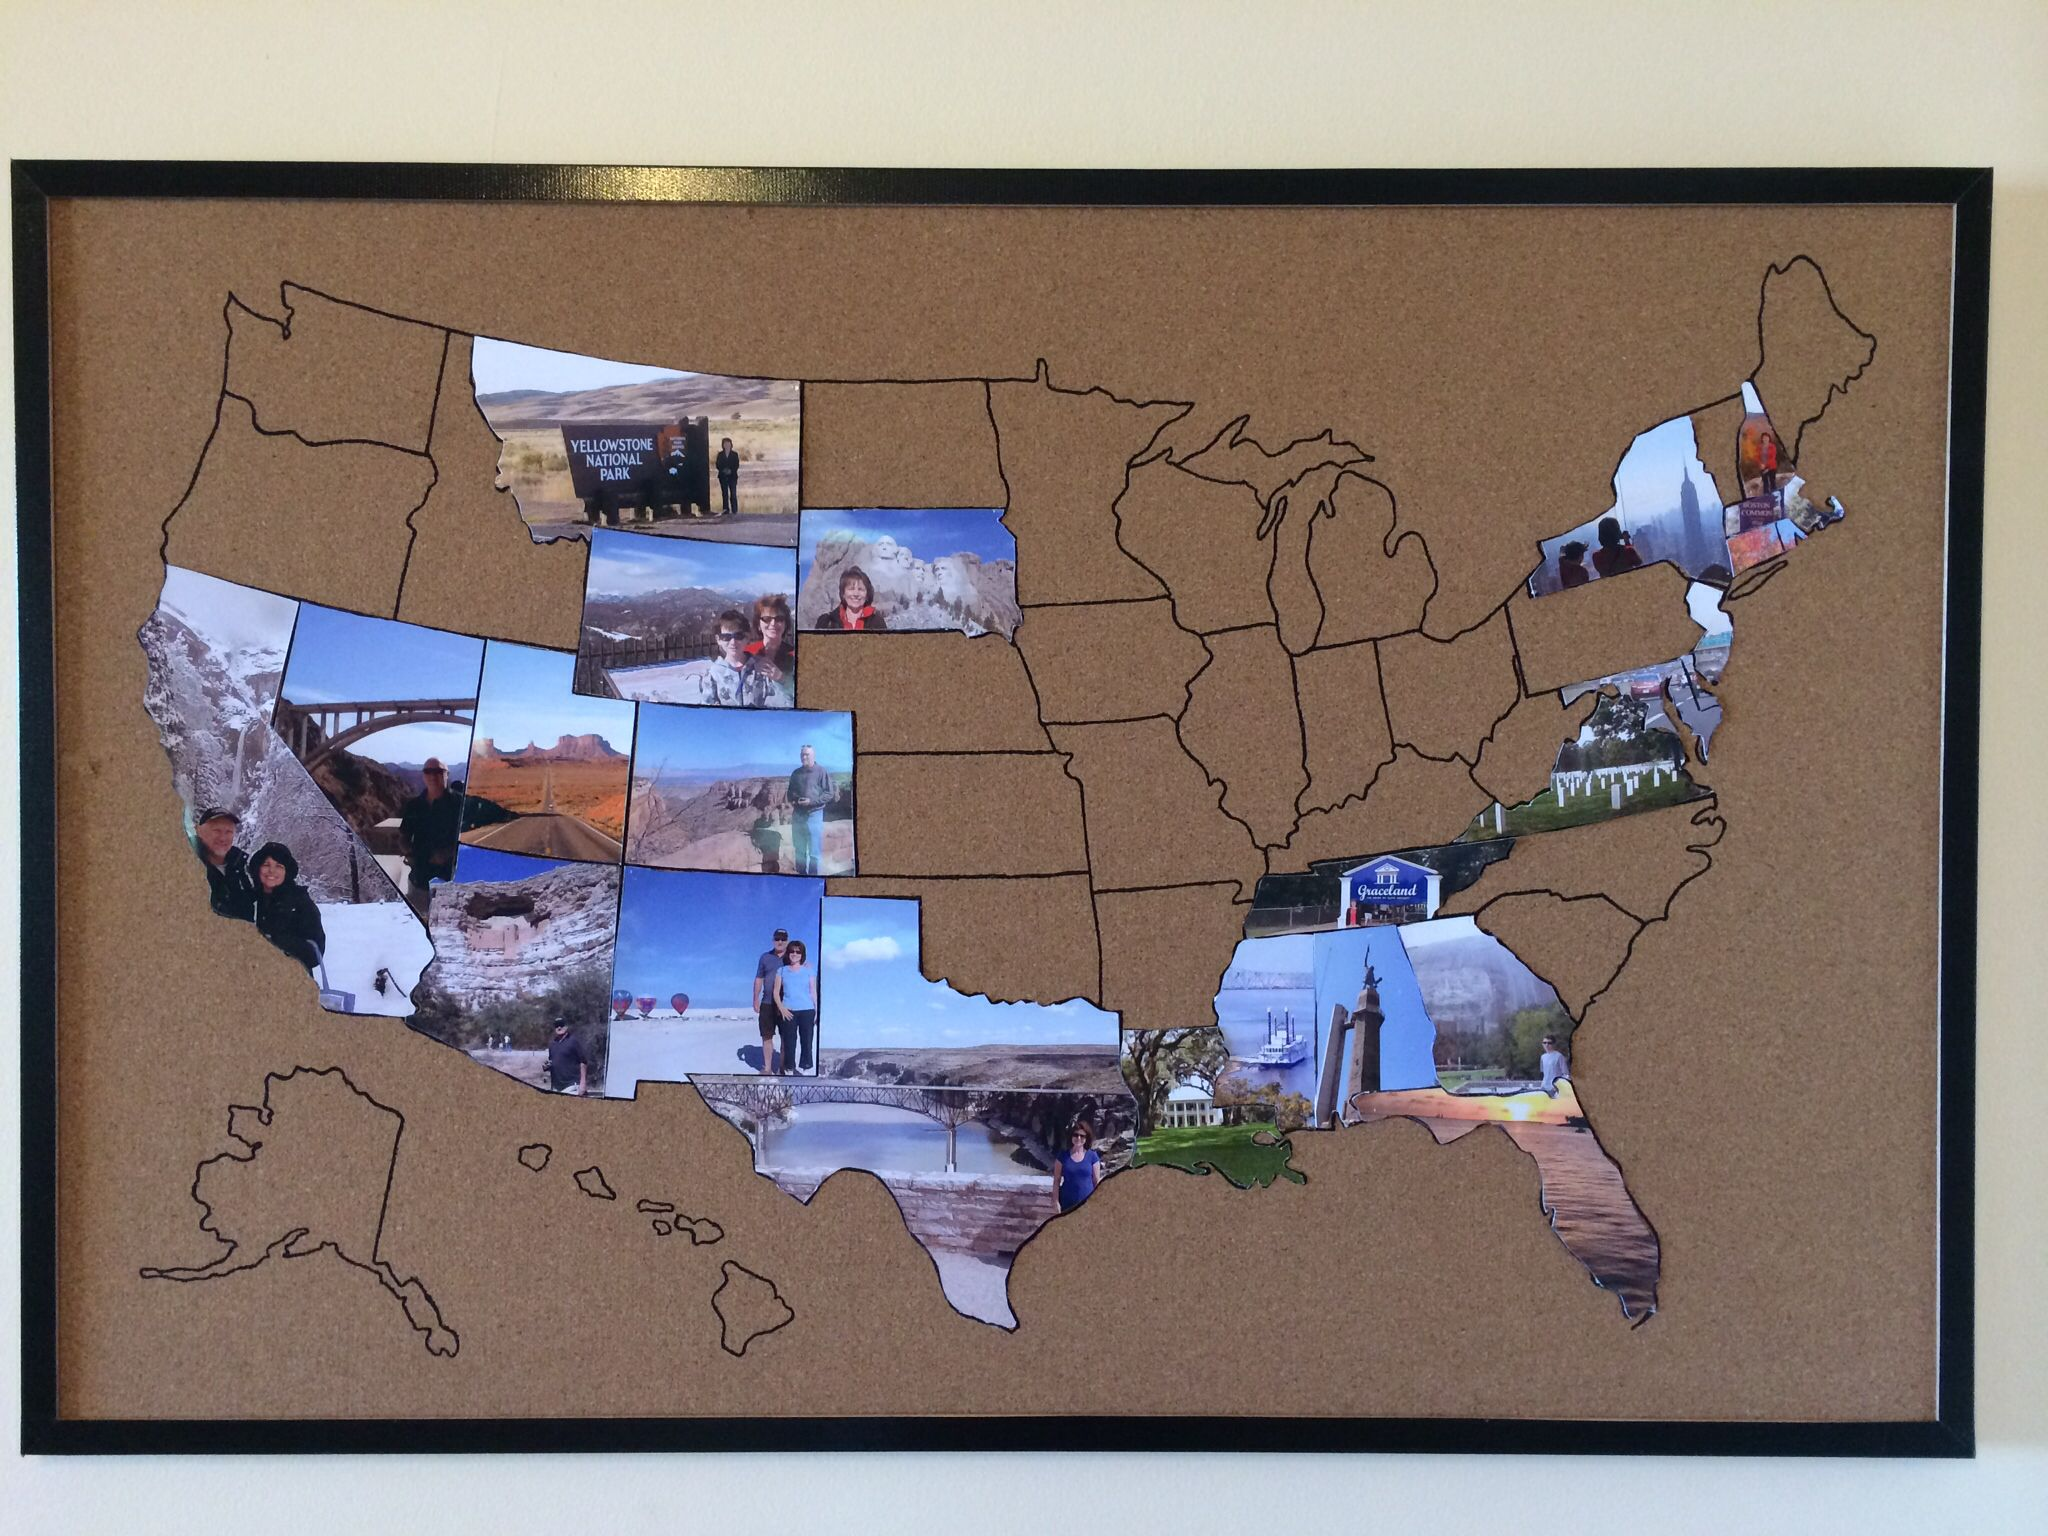 Draw A Map On A Cork Notice Board Resize Alaska And Hawaii To Fit Print A Photo For Each State And Cut To Shape With A Craft Knife